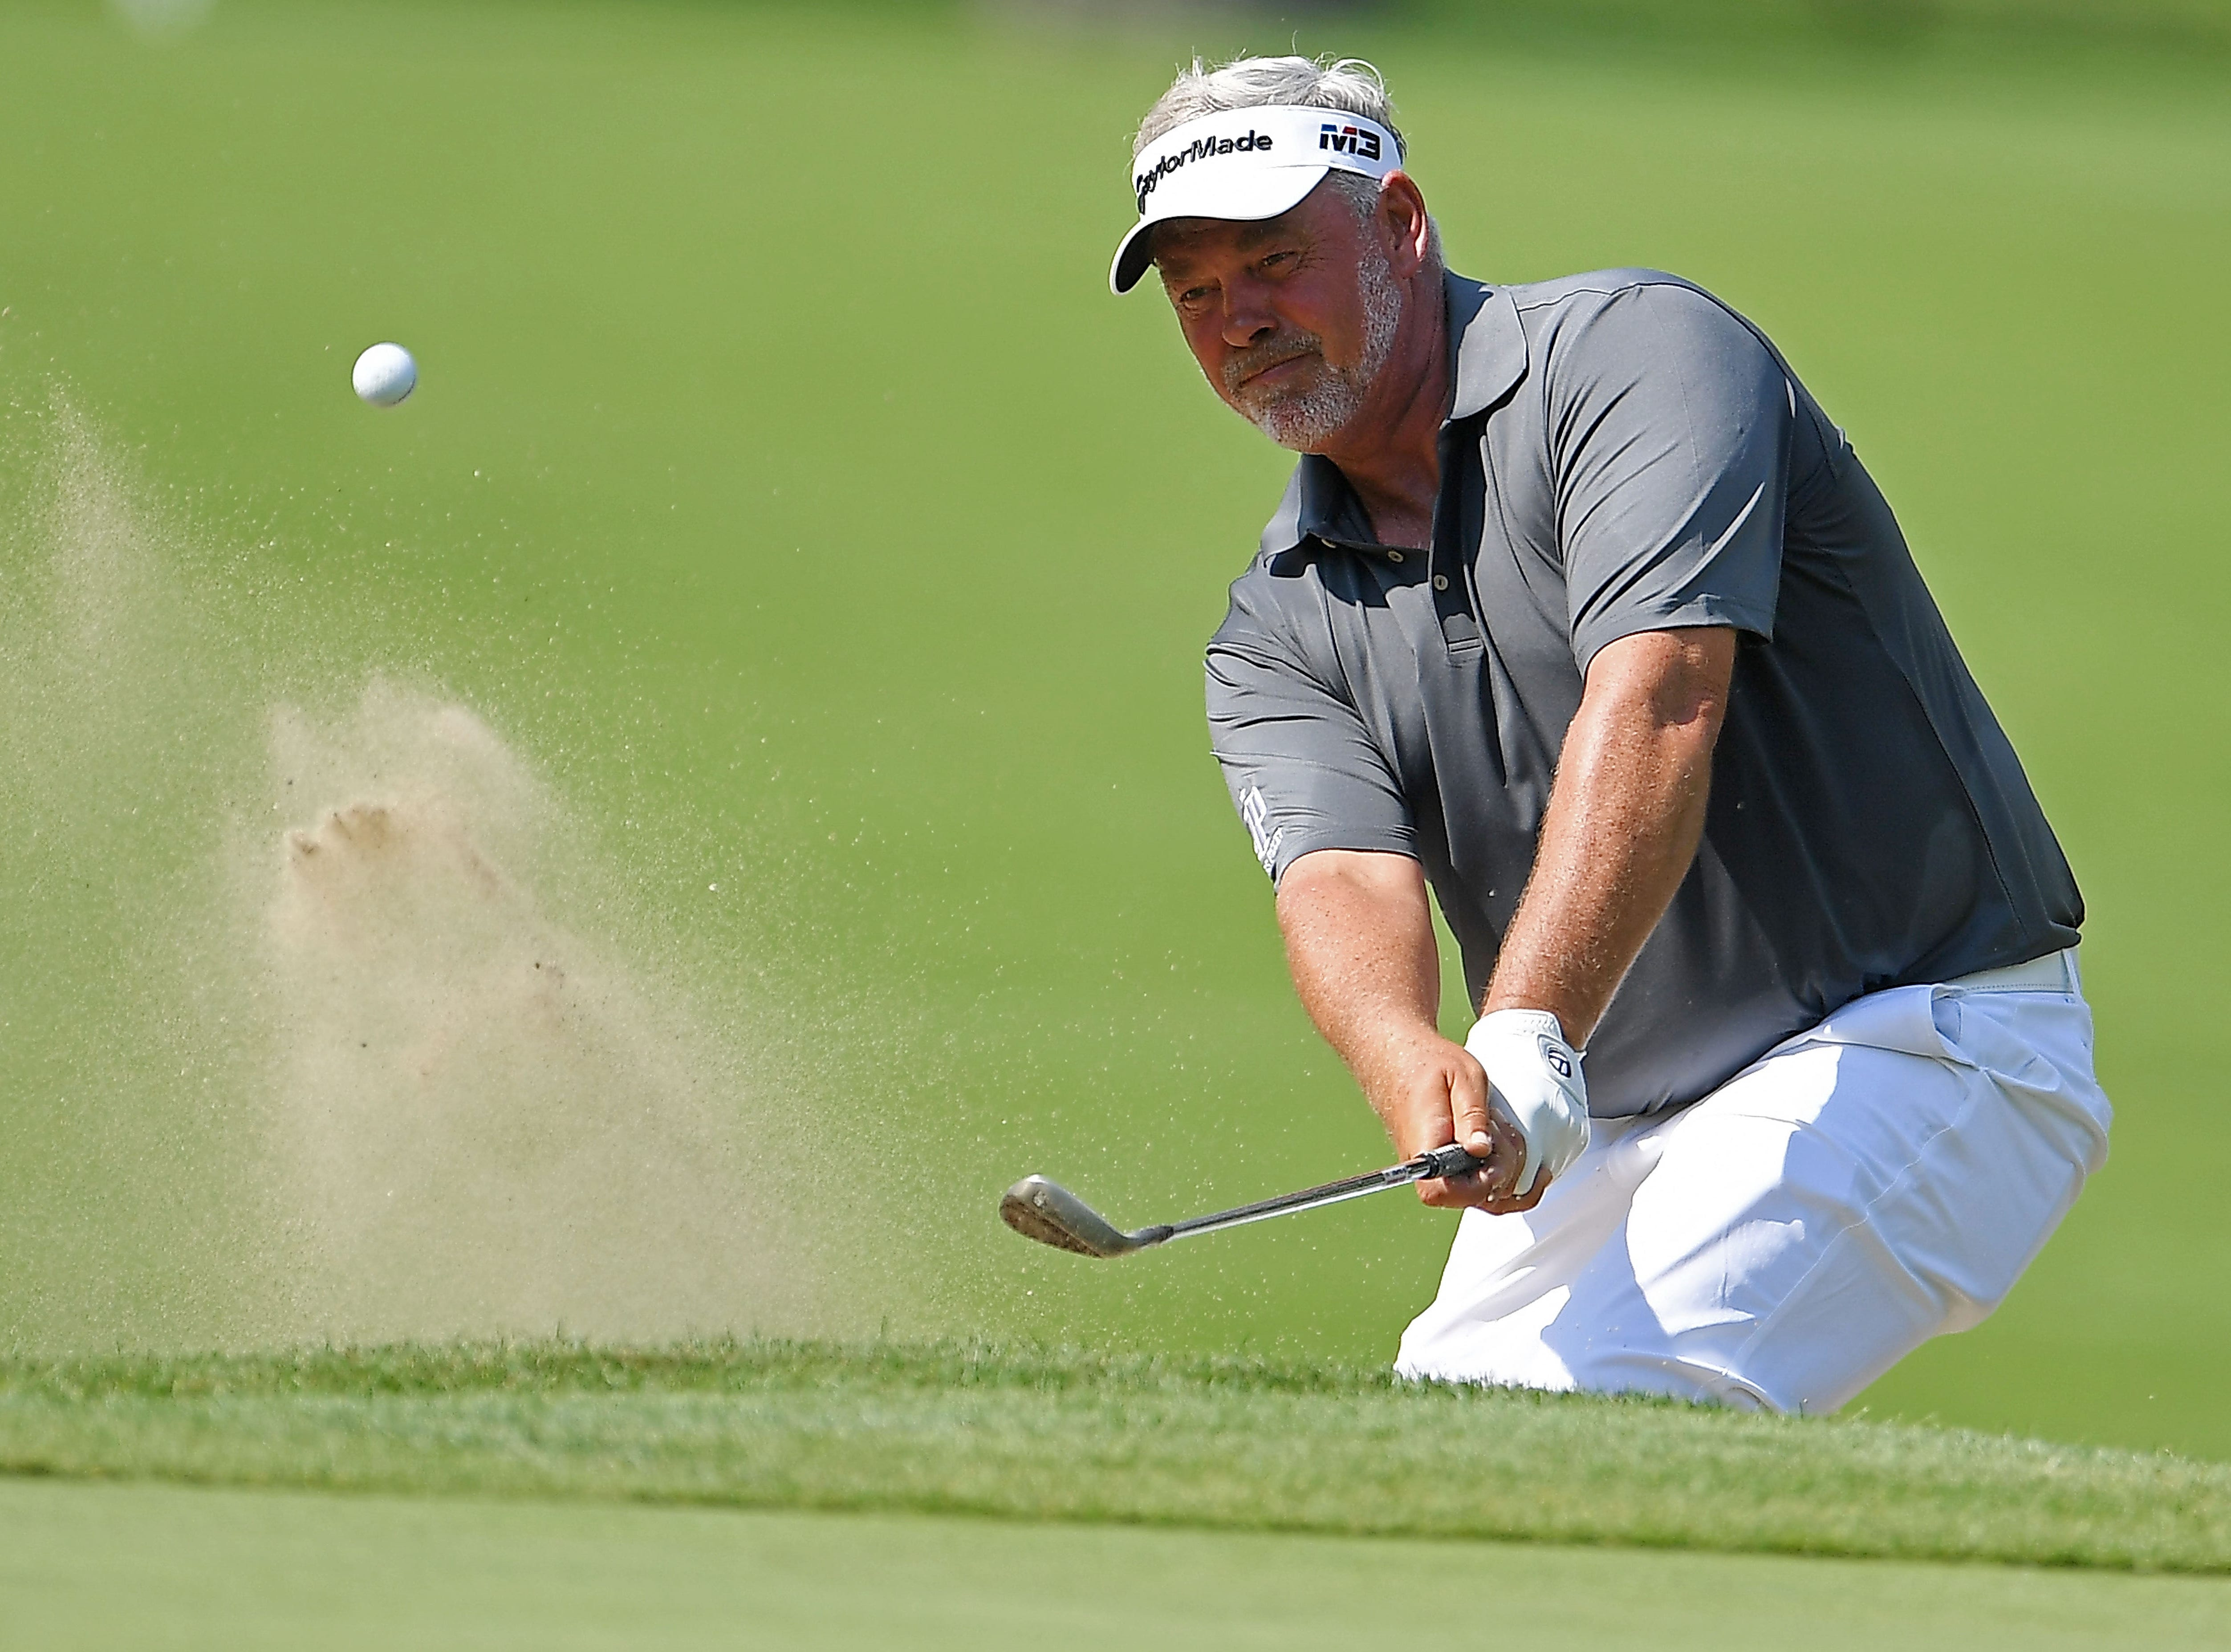 Darren Clarke hits from a green side bunker on the first hole.